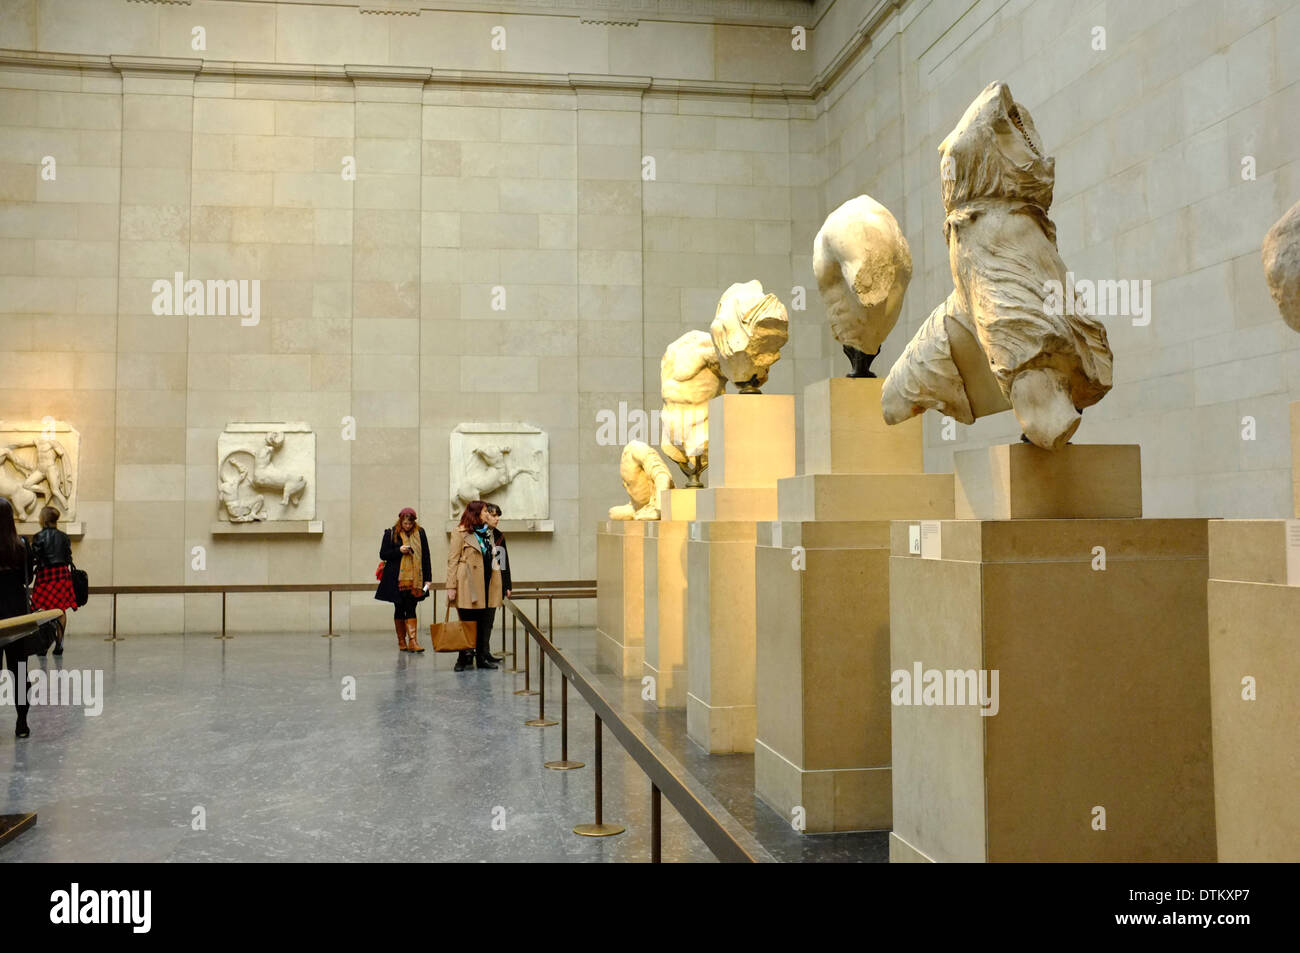 Elgin Marbles Greek/Roman artifacts at the British Museum, London, England Stock Photo